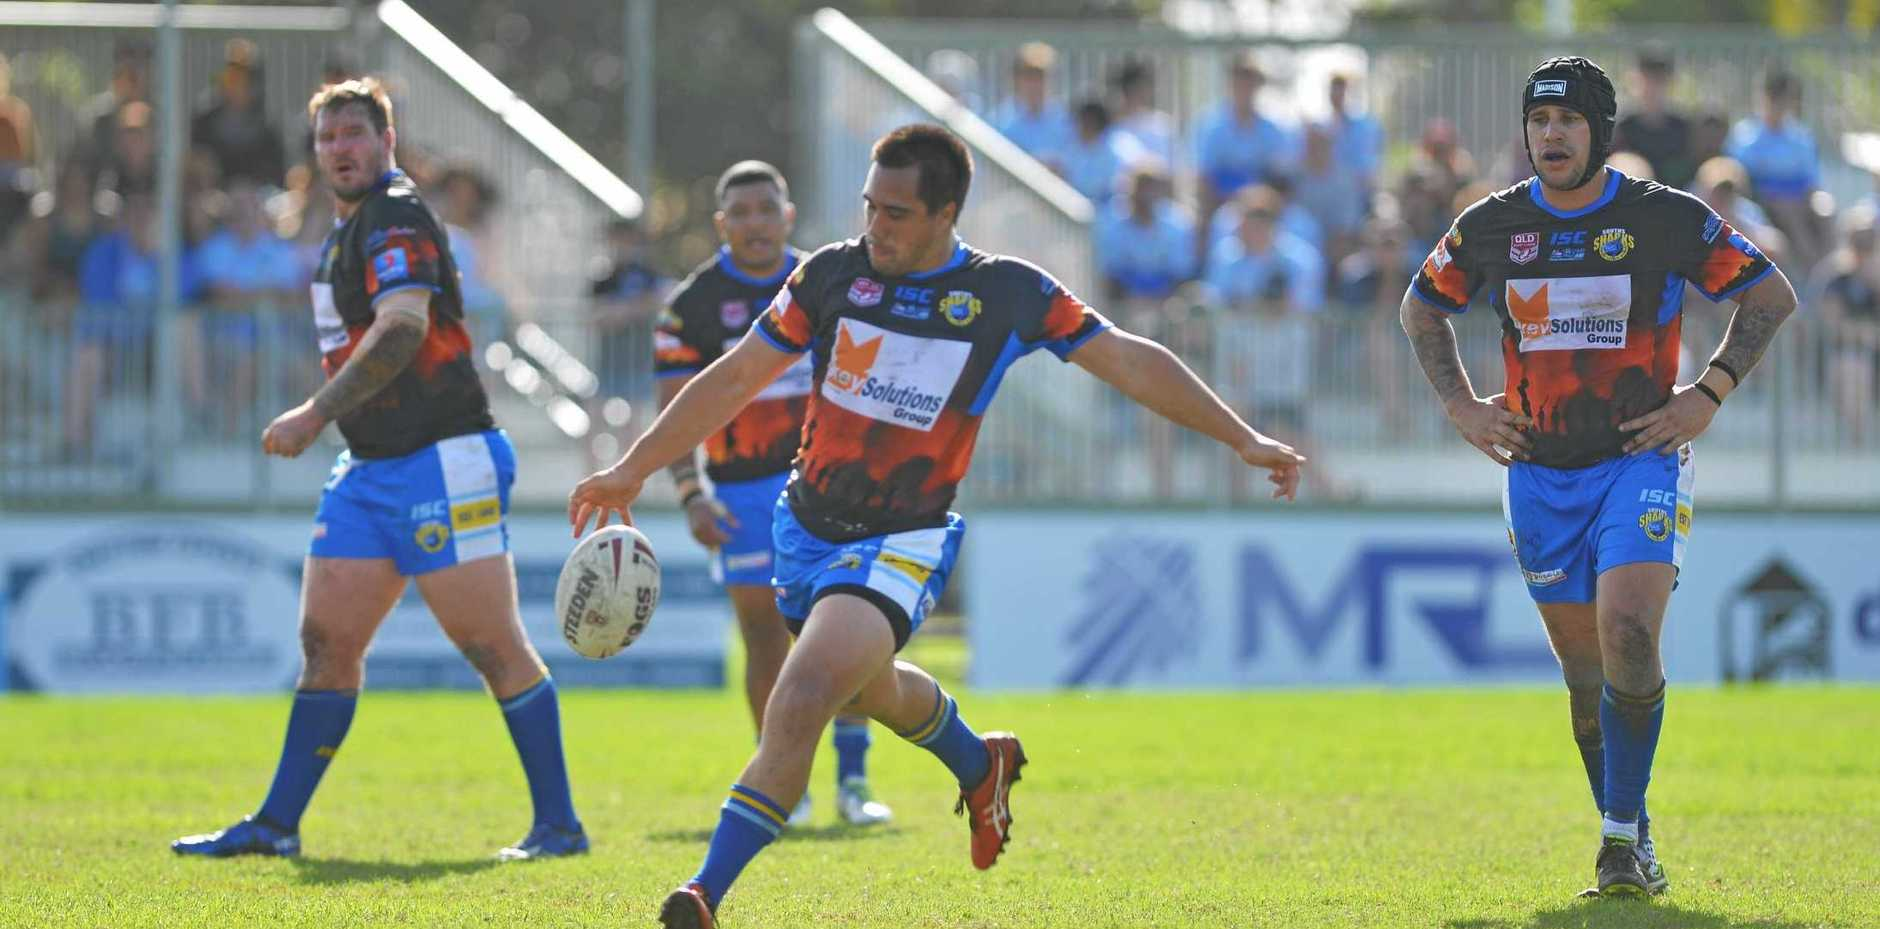 The precision kicking game of Shannon Rupapere has been a highlight of Souths' season so far.